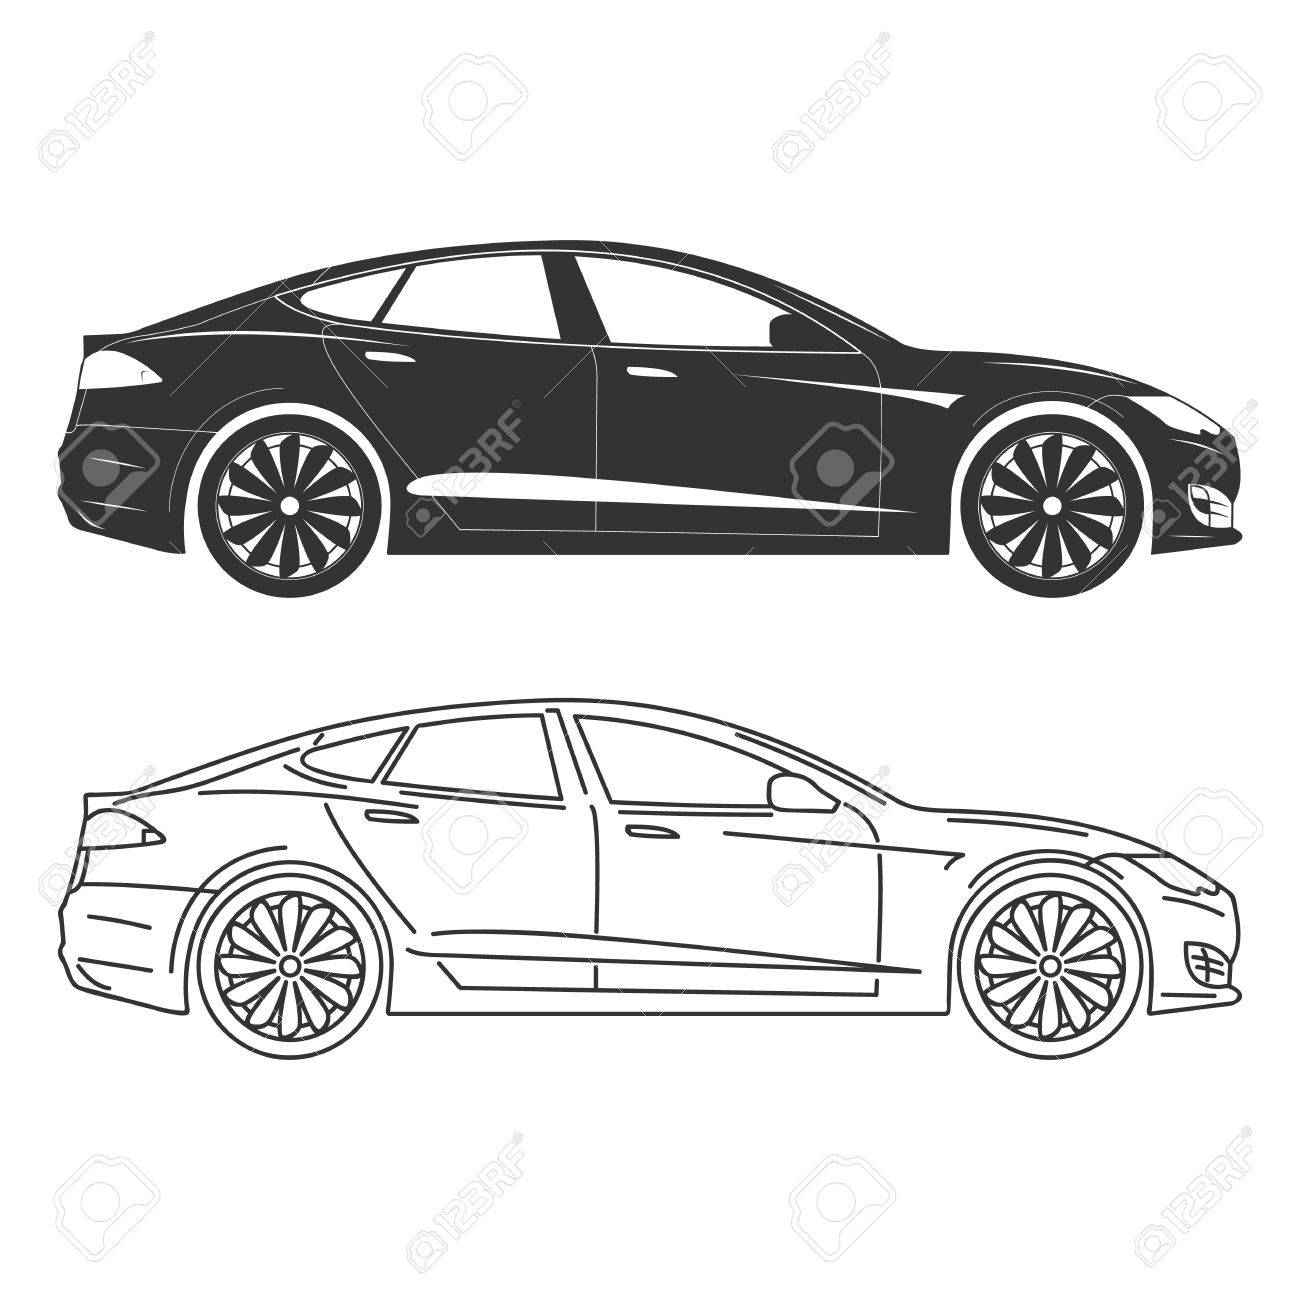 Silhouette of electric car Side view Flat Outline..